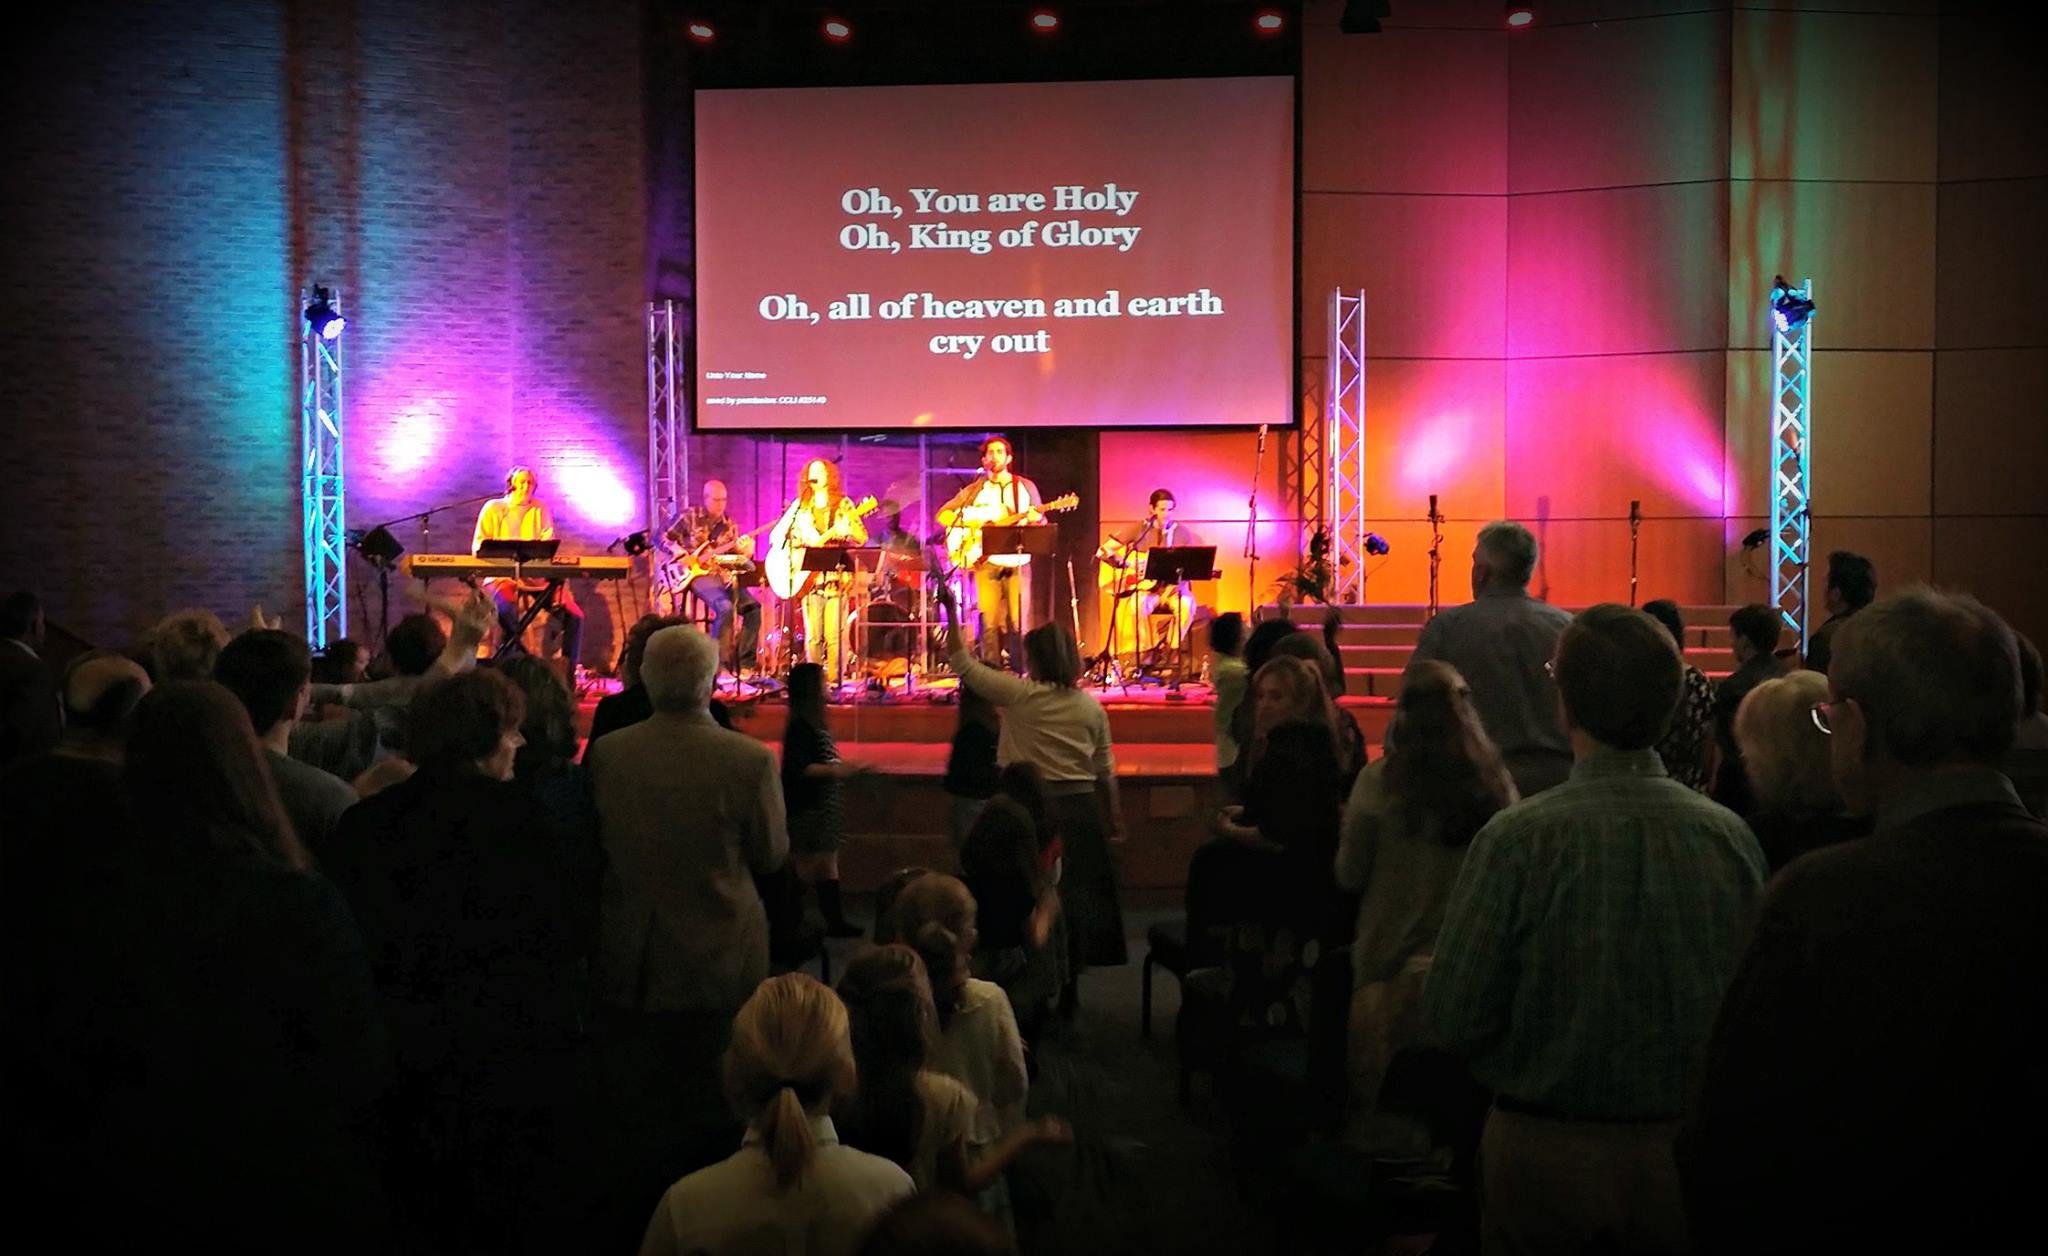 our future church above annual projects and measurable accomplishments we desire our community to provide an environment that opens the way for people to see who god is